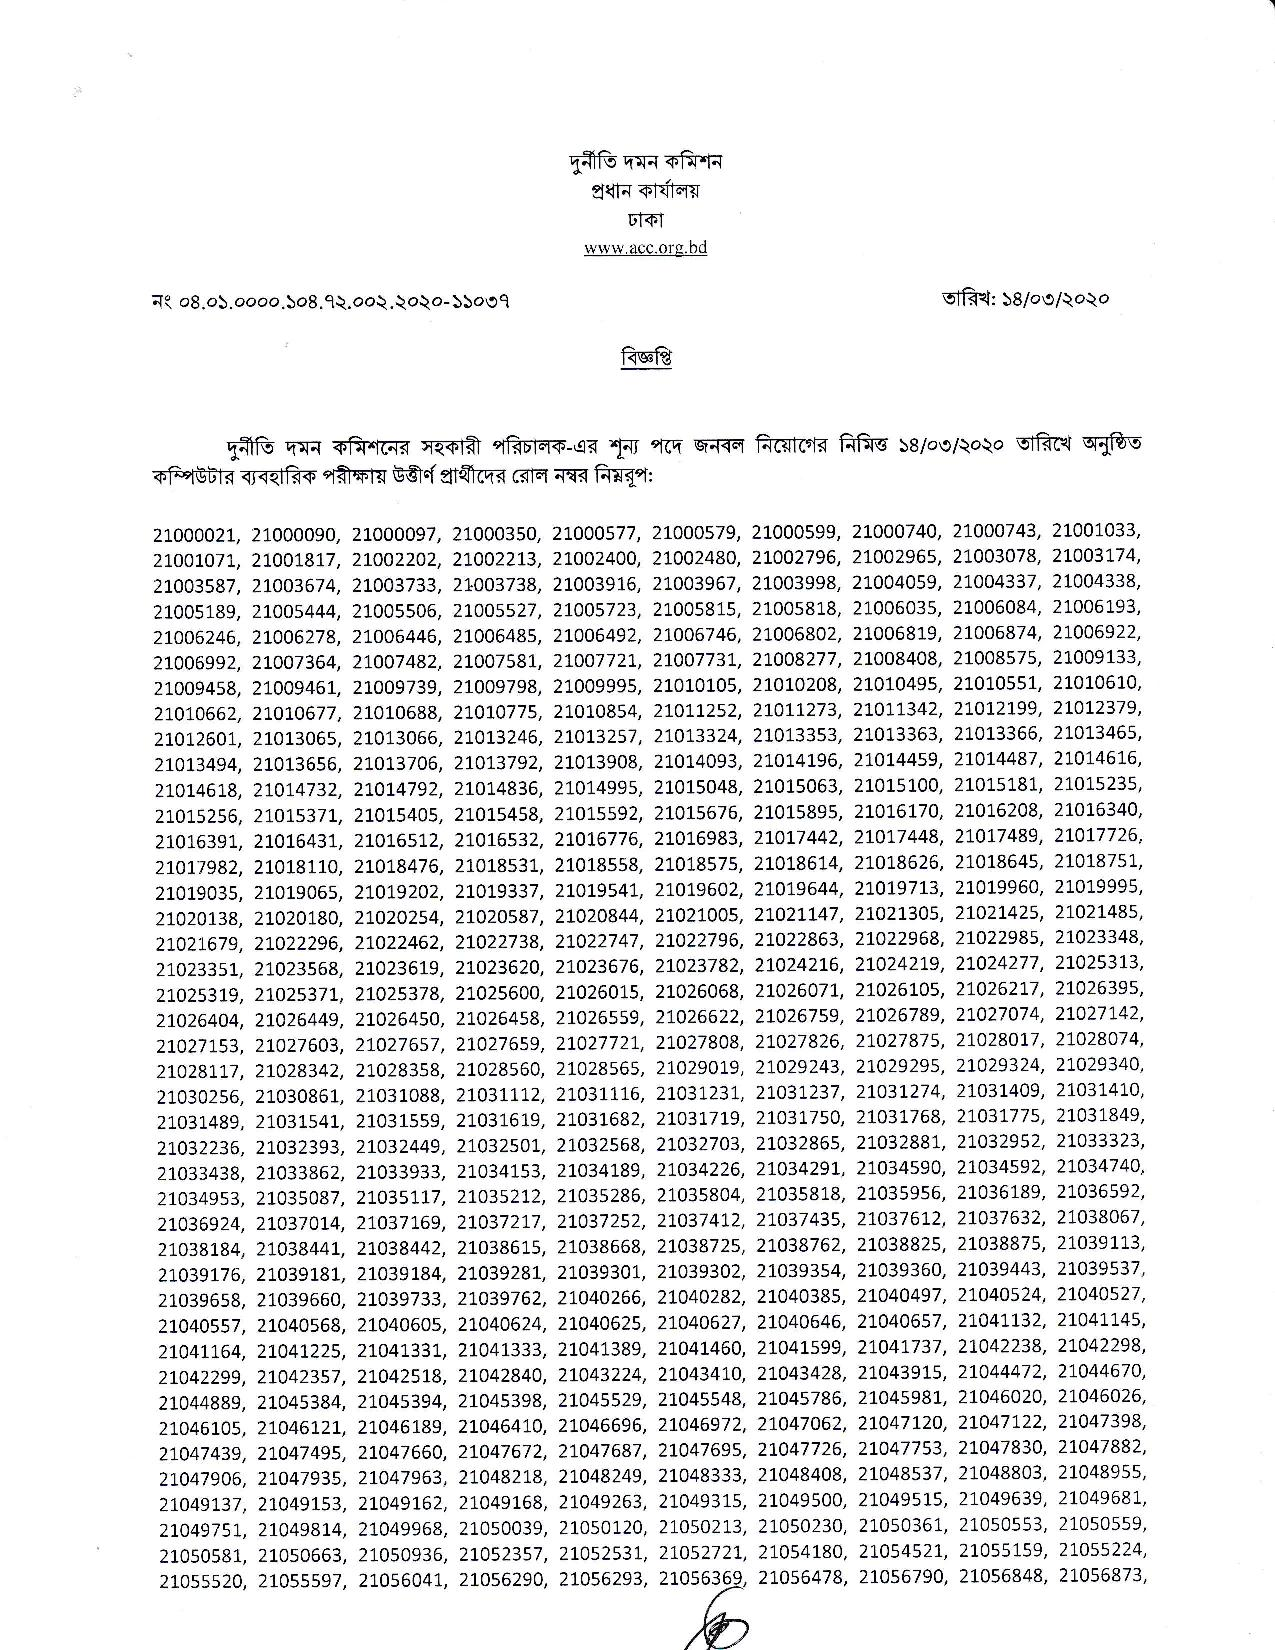 ACC Practical Exam result 2020   Assistant Director